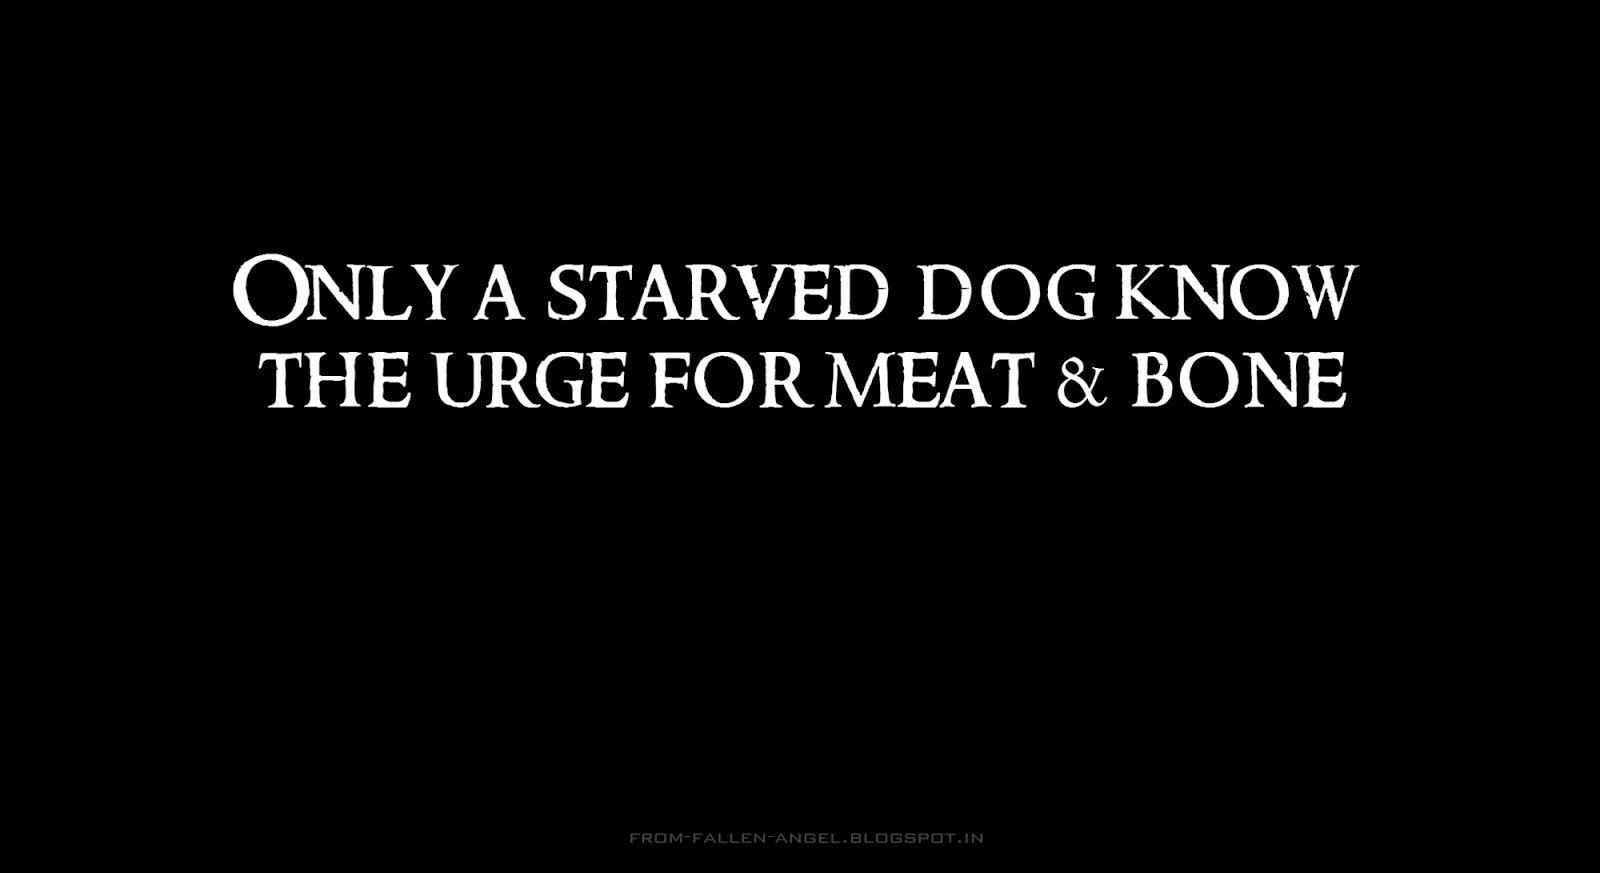 Only a starved dog know the urge for meat & bone